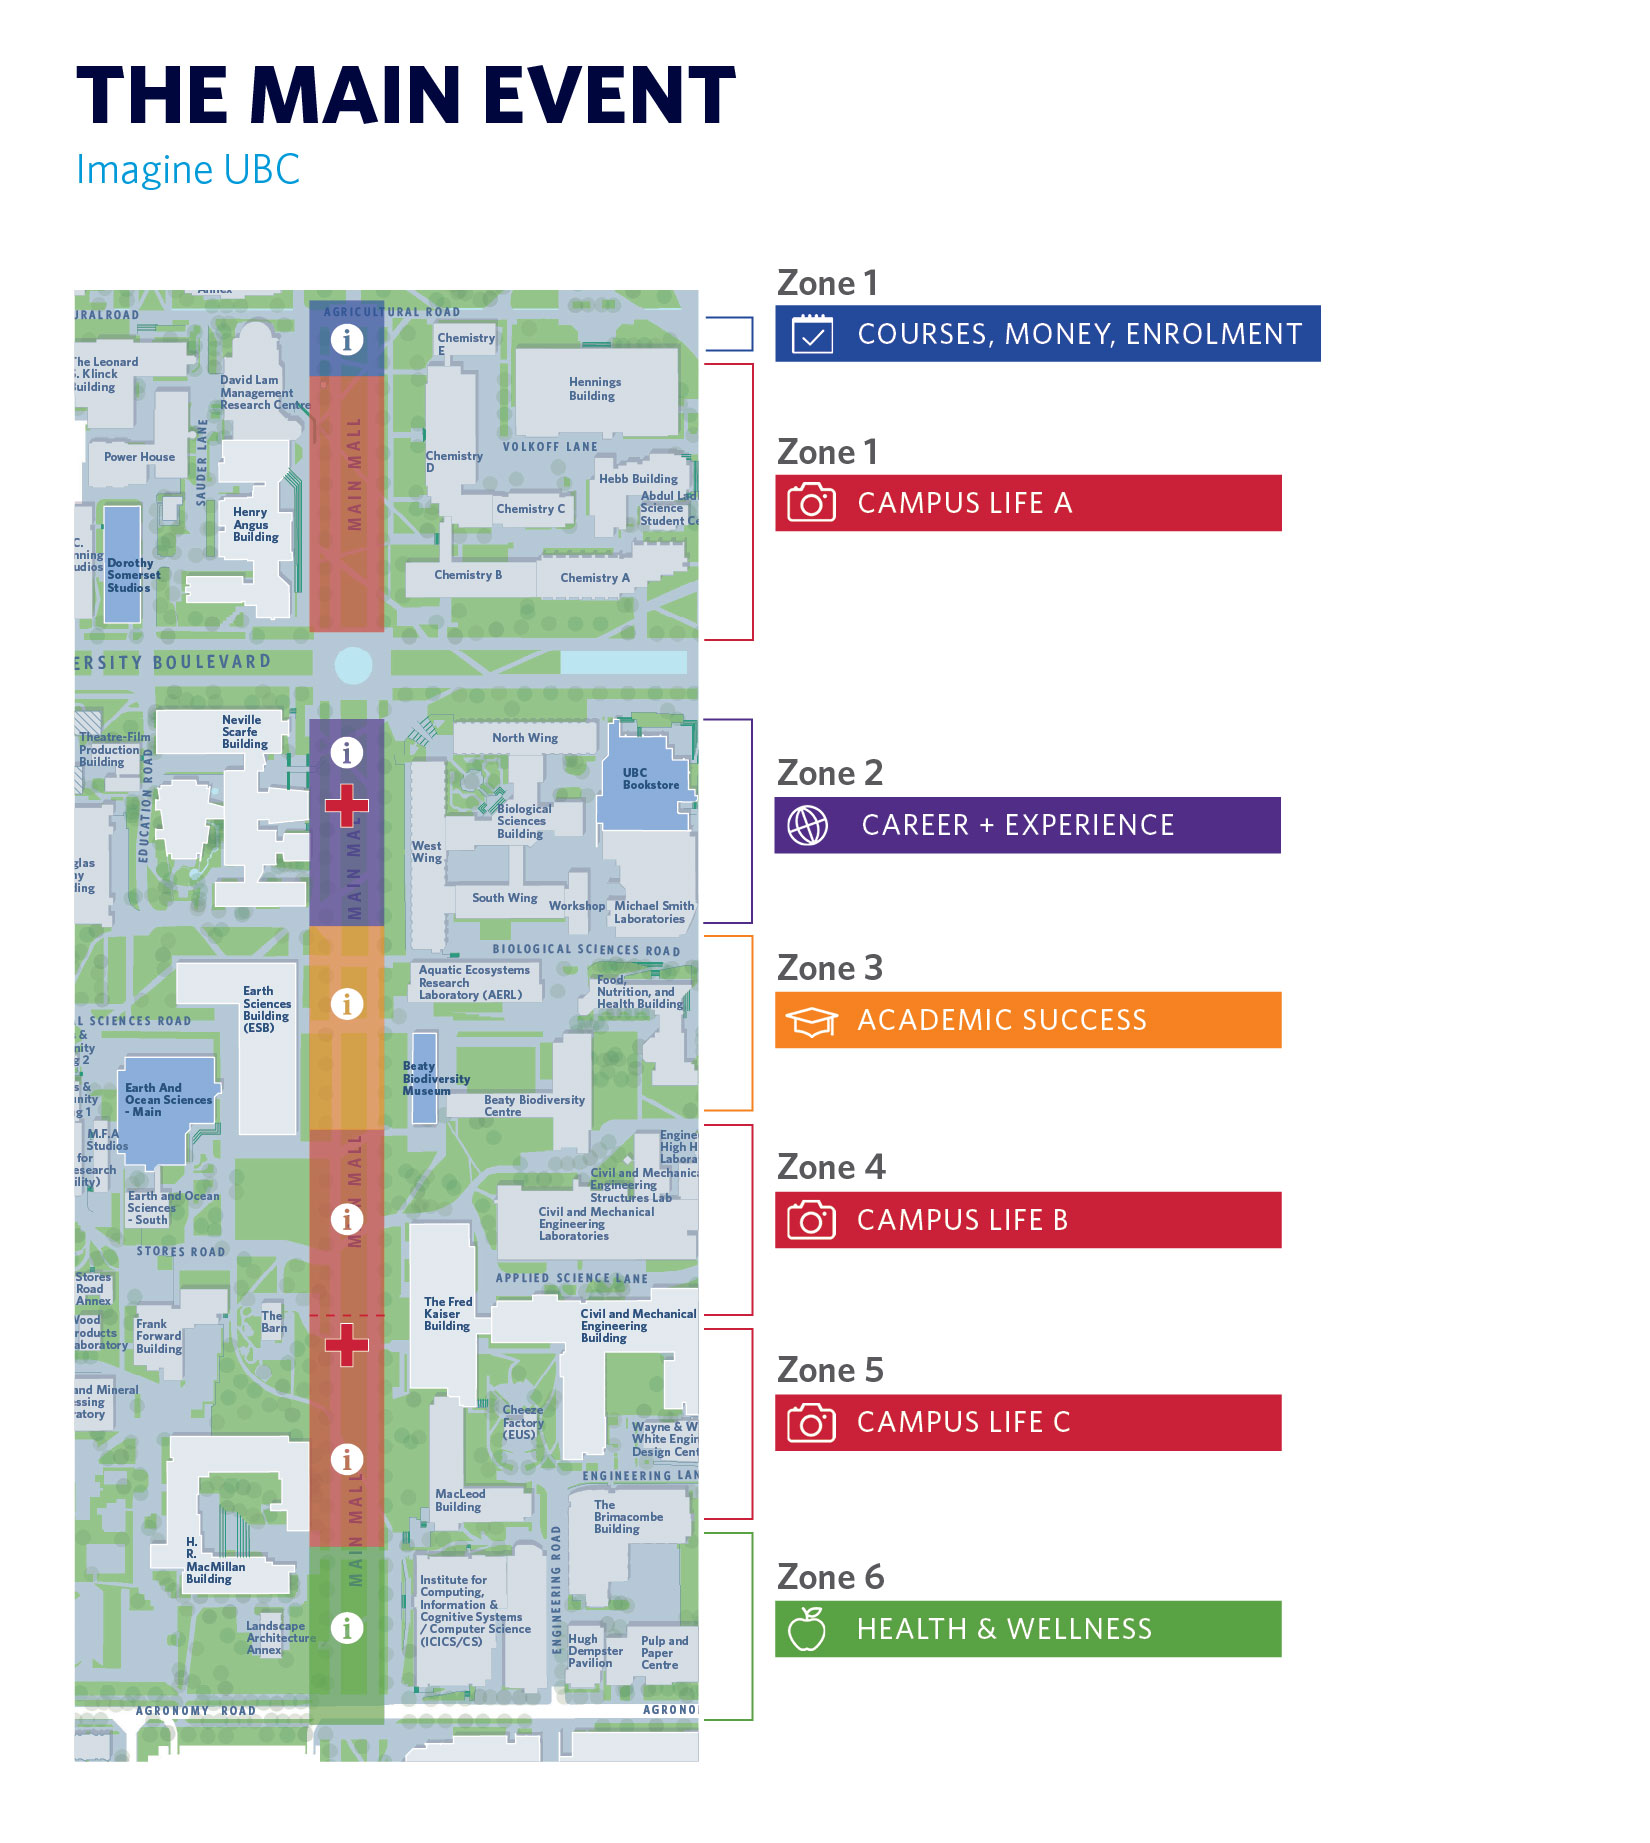 A map of the Main Event at UBC